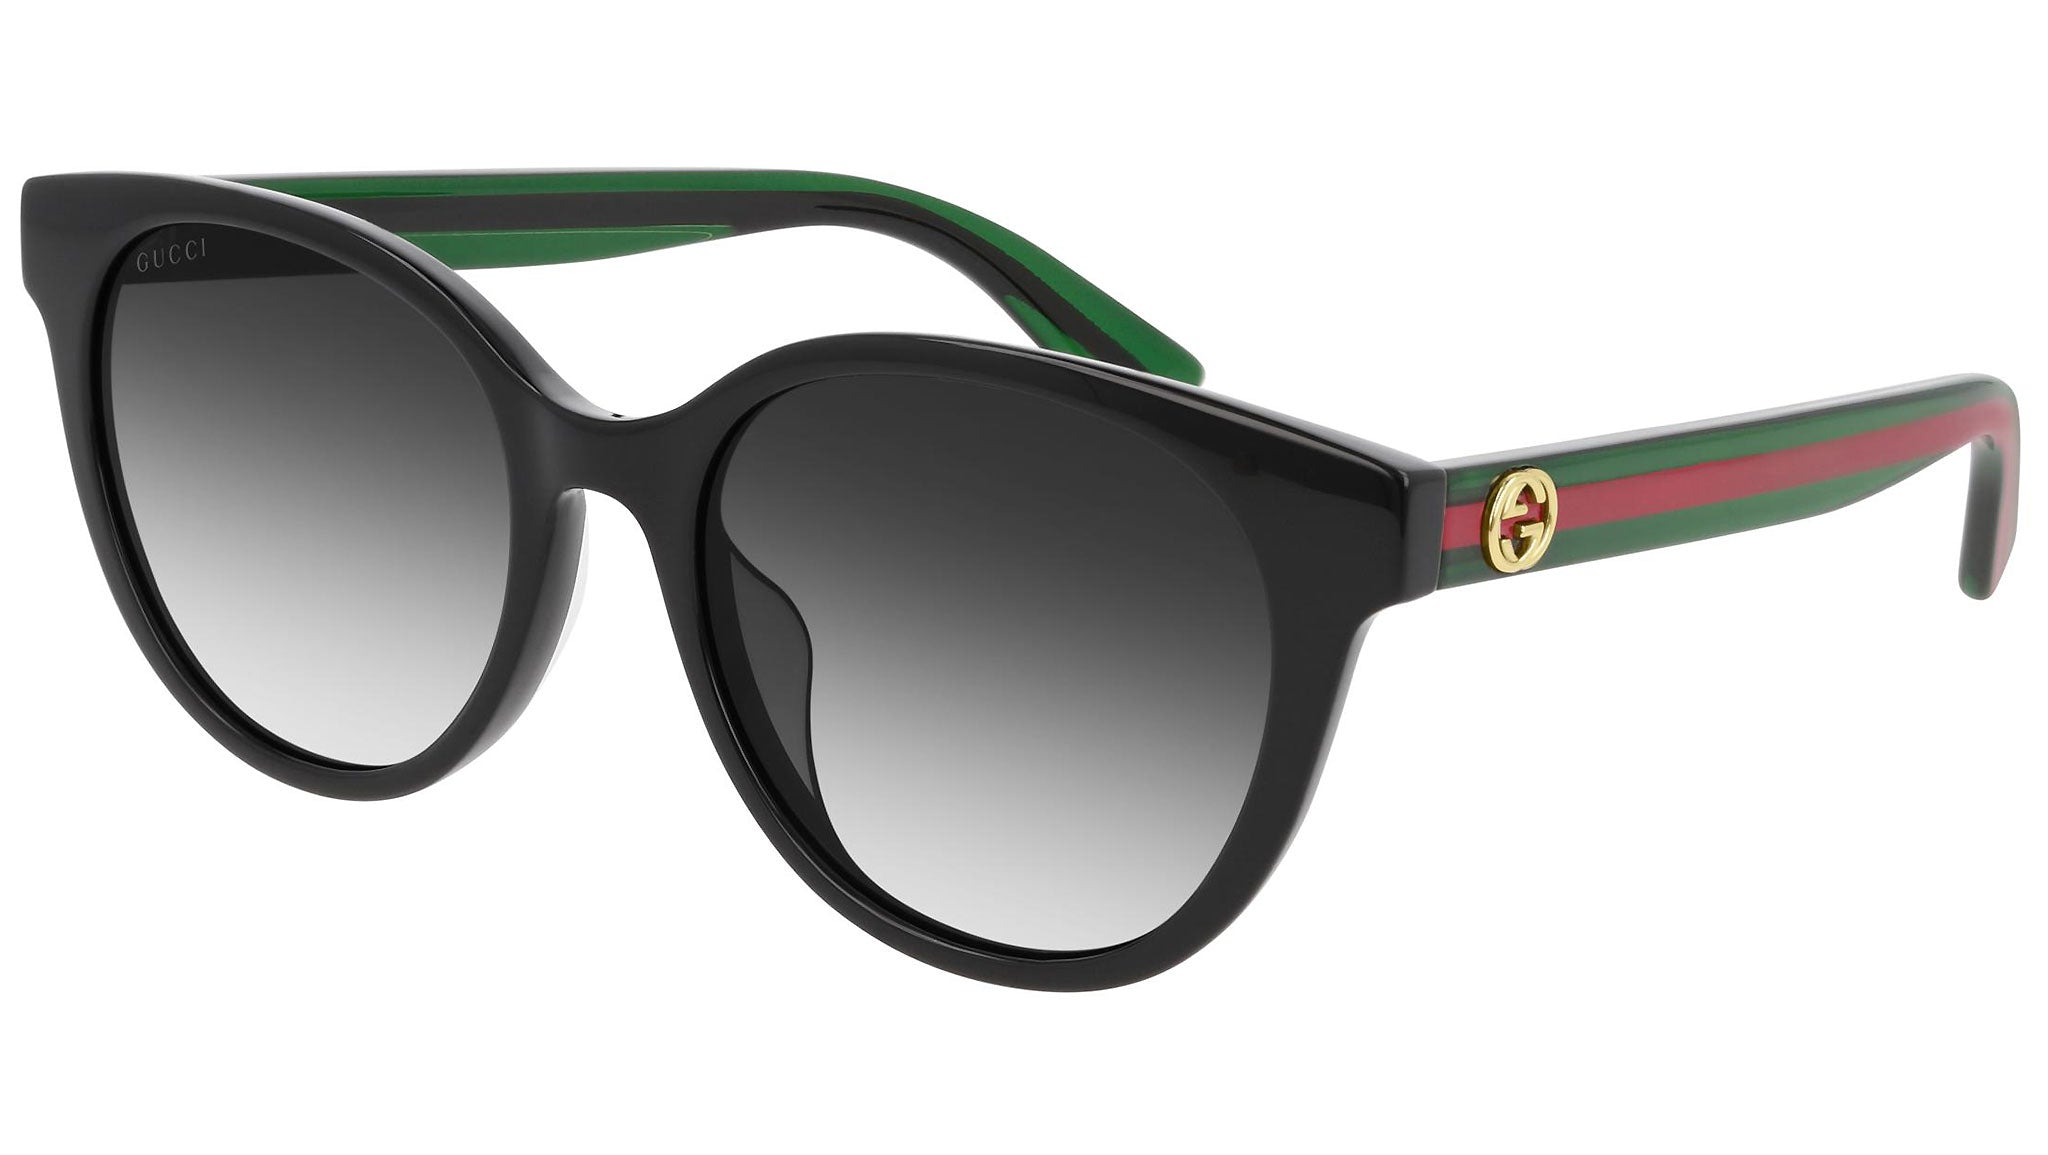 GG0702SK shiny black and green